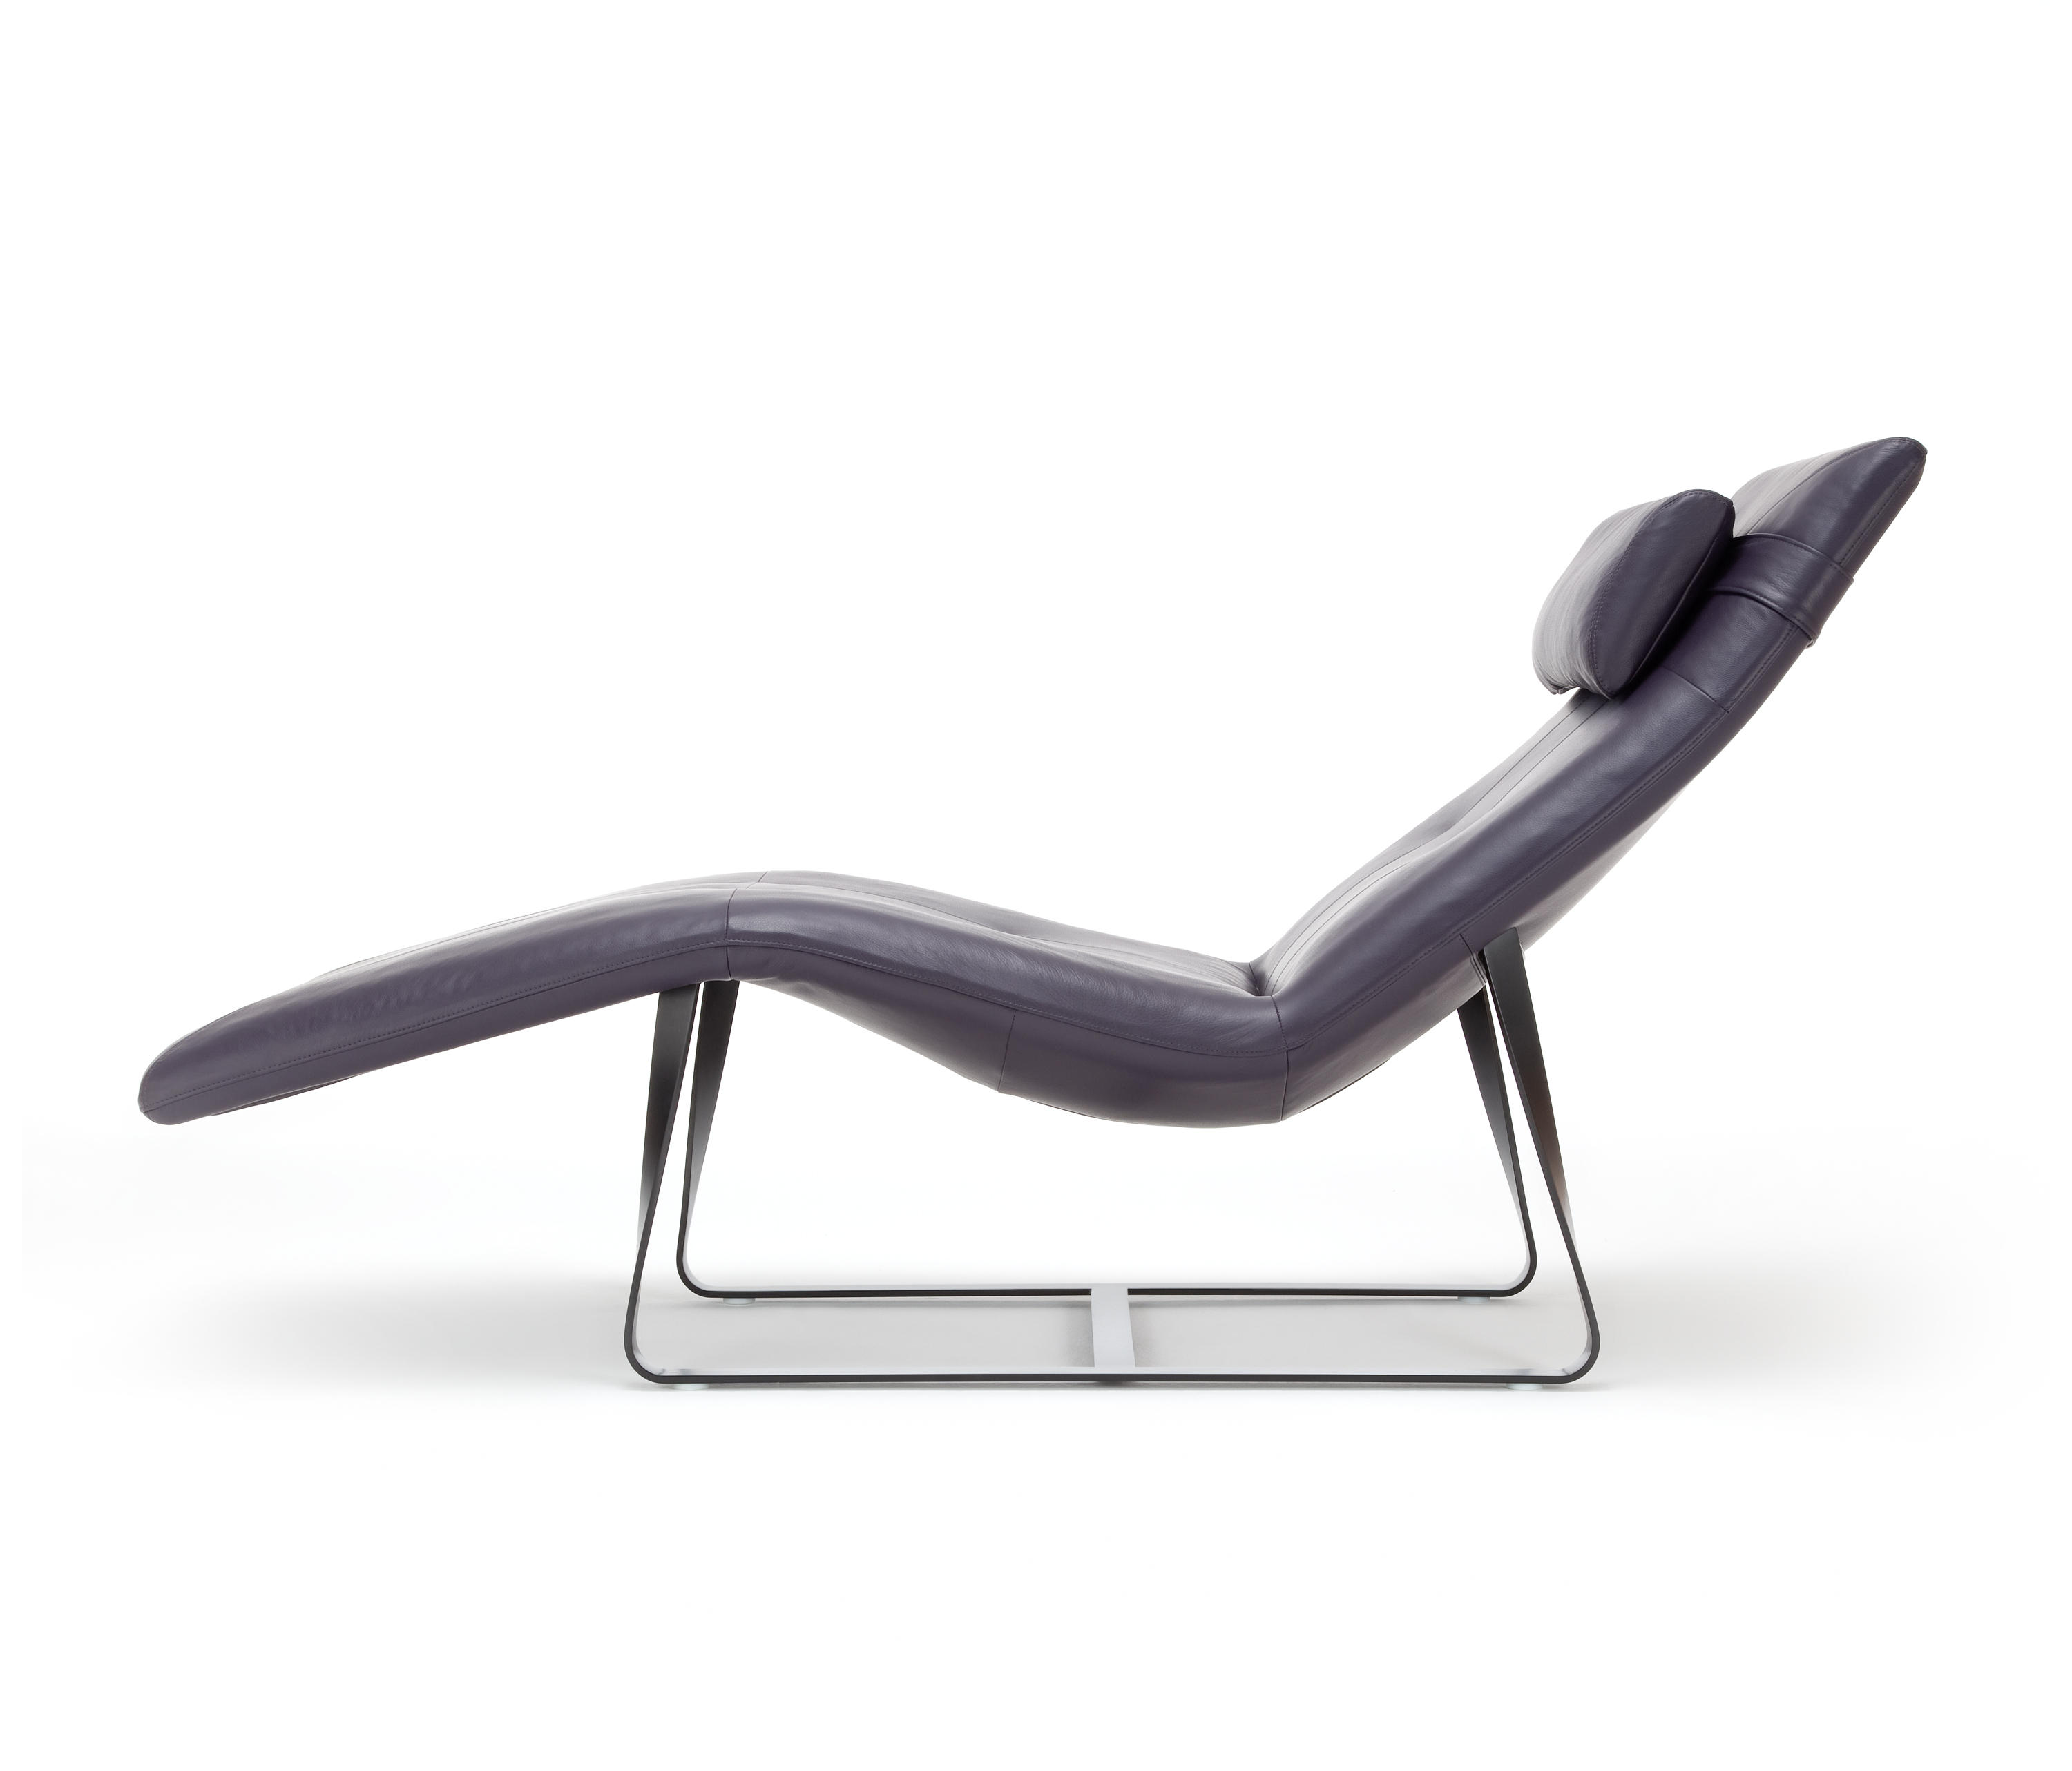 Rolf Benz 360 Chaise Longues From Rolf Benz Architonic